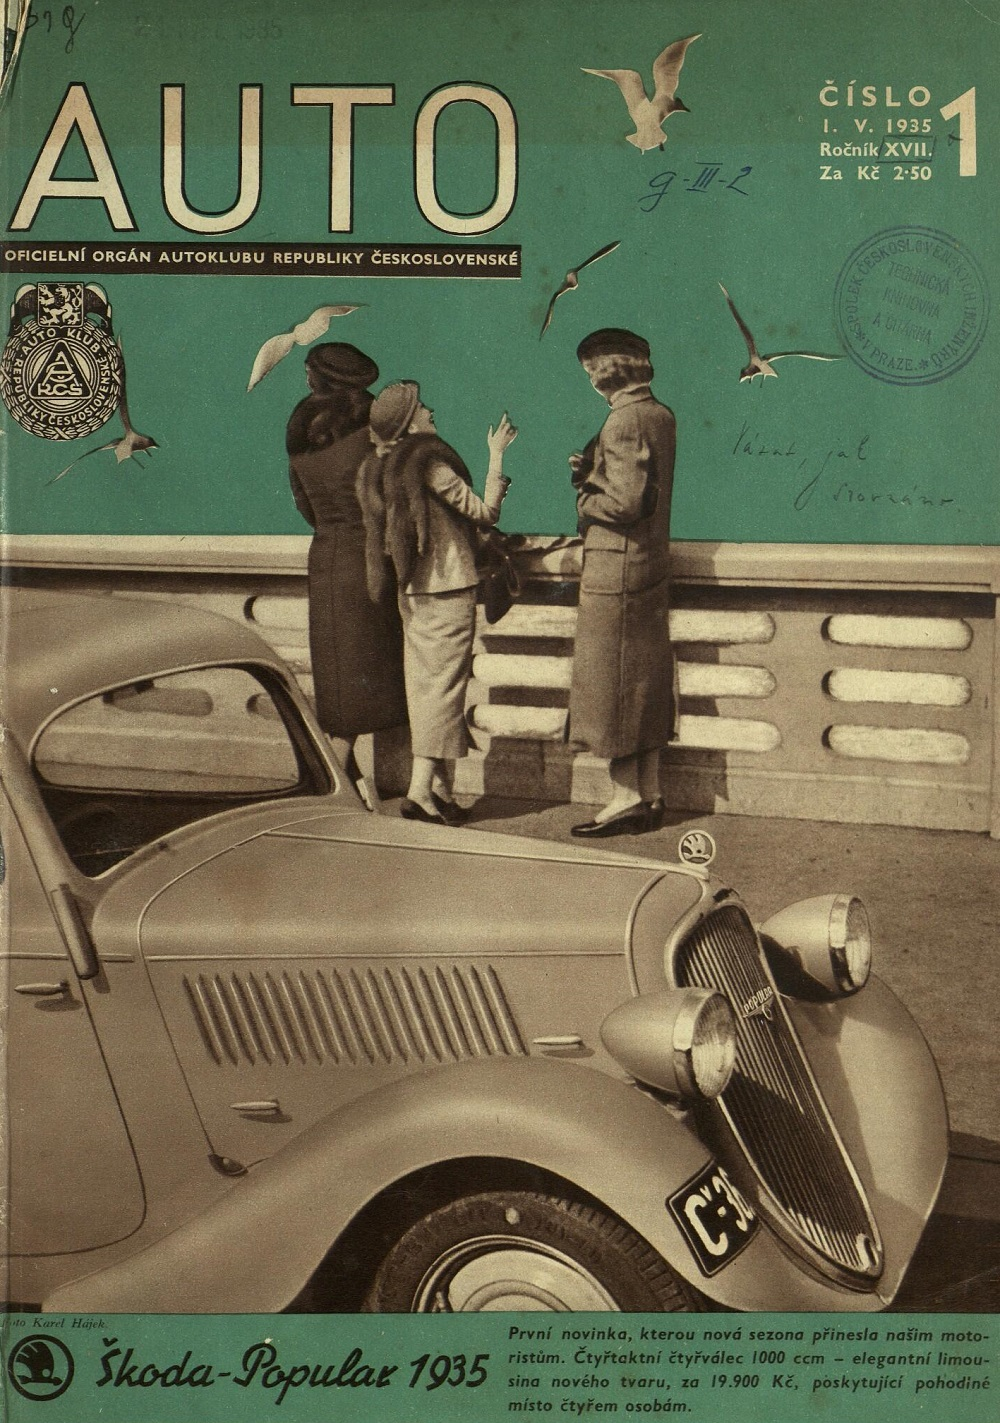 Beautiful Vintage Czech Auto Magazine Covers From 1935